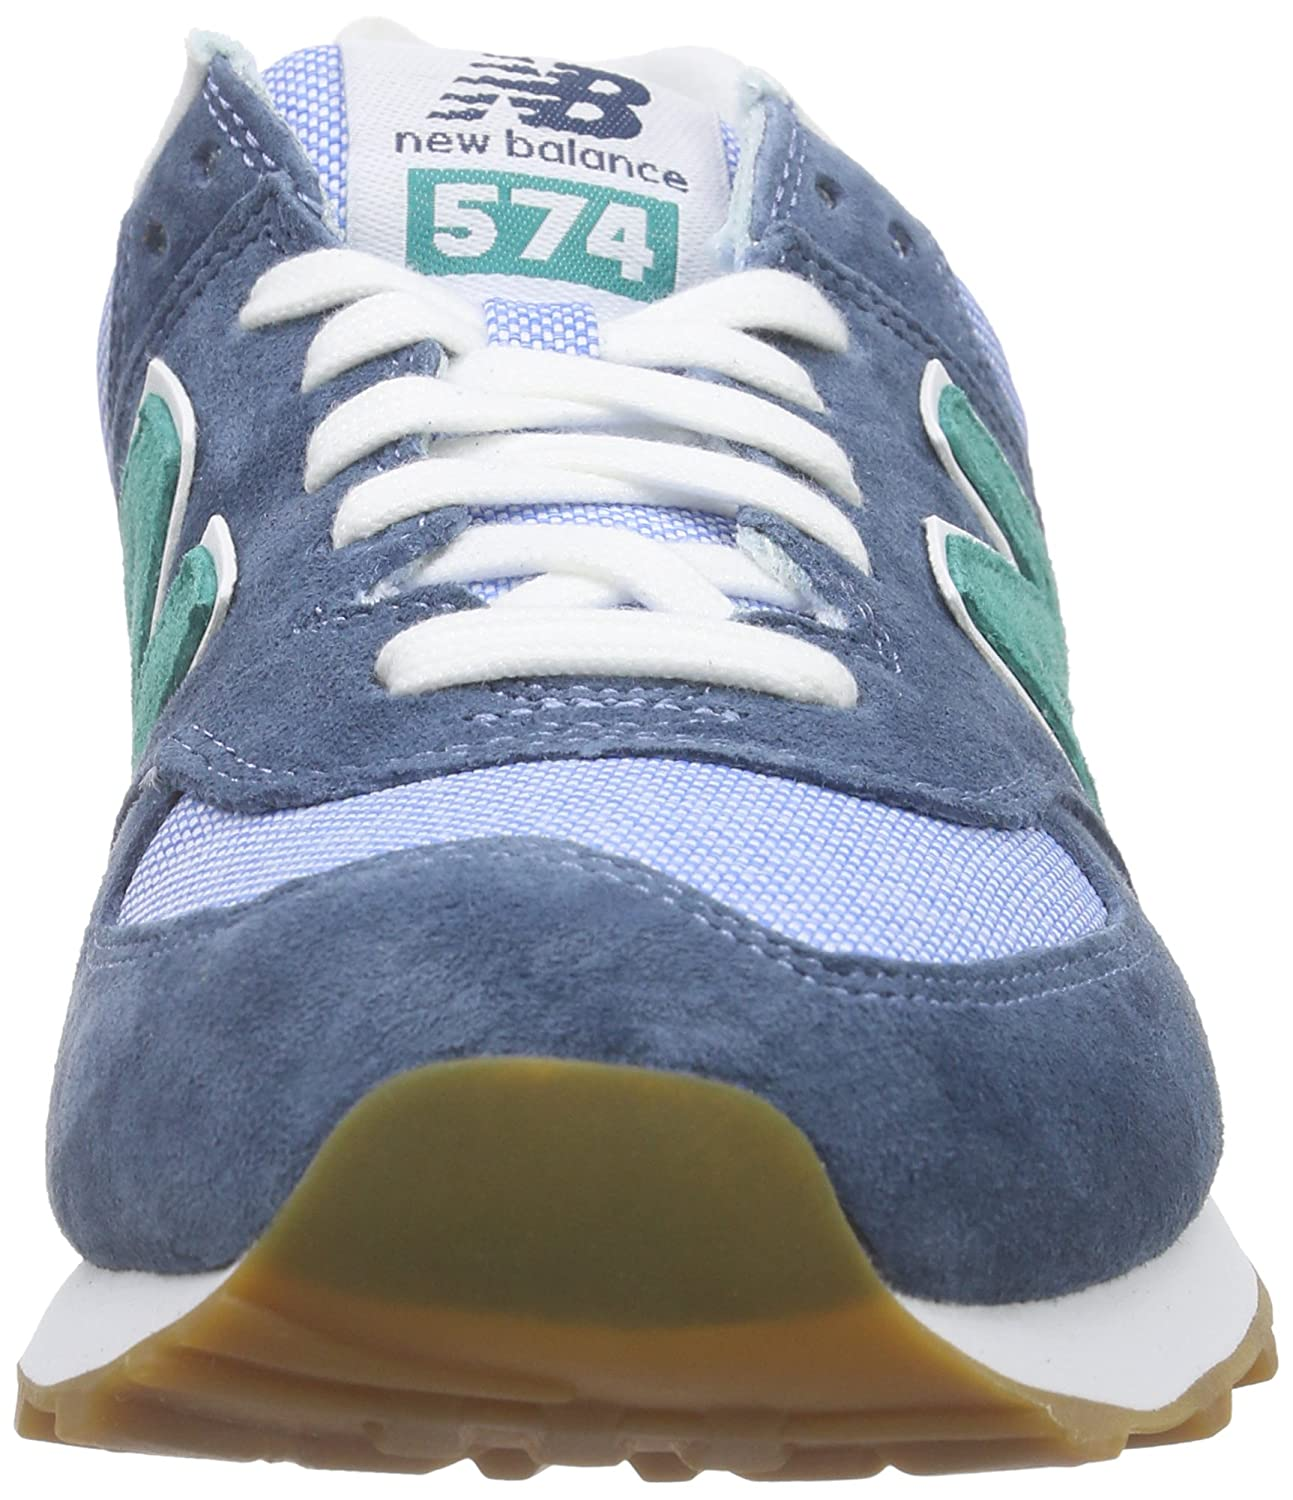 new balance men's ml574 pib